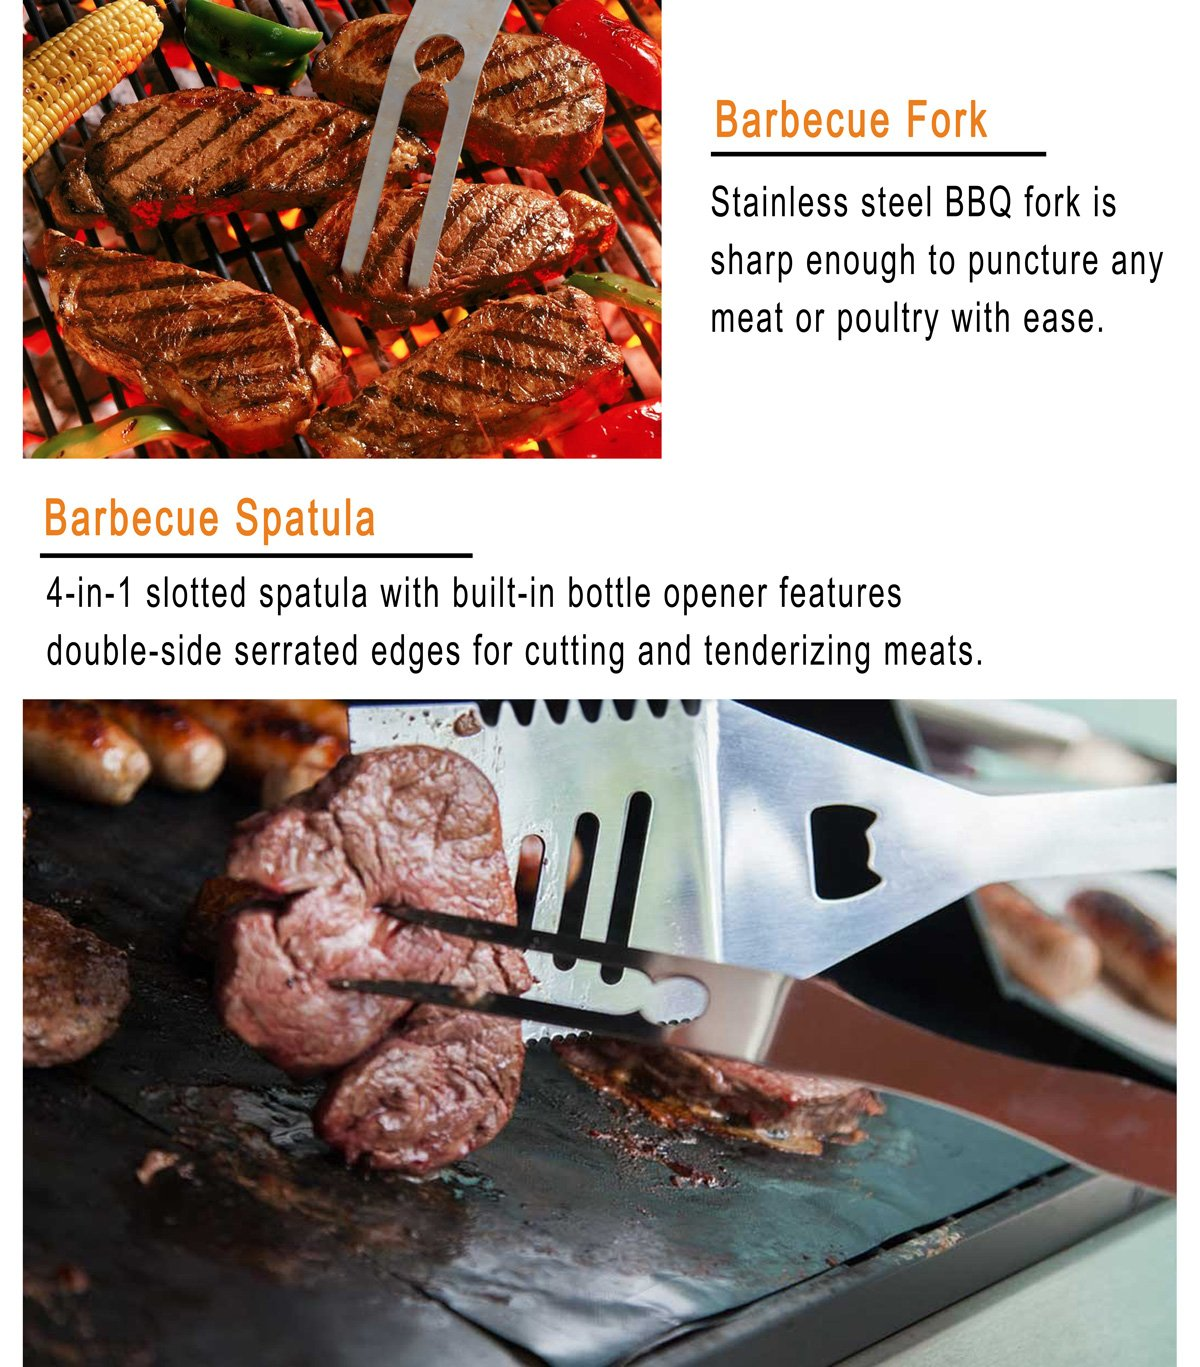 grilljoy 25 Piece BBQ Grill Tool Set- Premium Stainless Steel Grilling Accessories with Heat Proof Grip in Aluminum Case, Perfect BBQ Tools Set Gift for Father's Day, Birthday, Camping and Tailgating by grilljoy (Image #5)